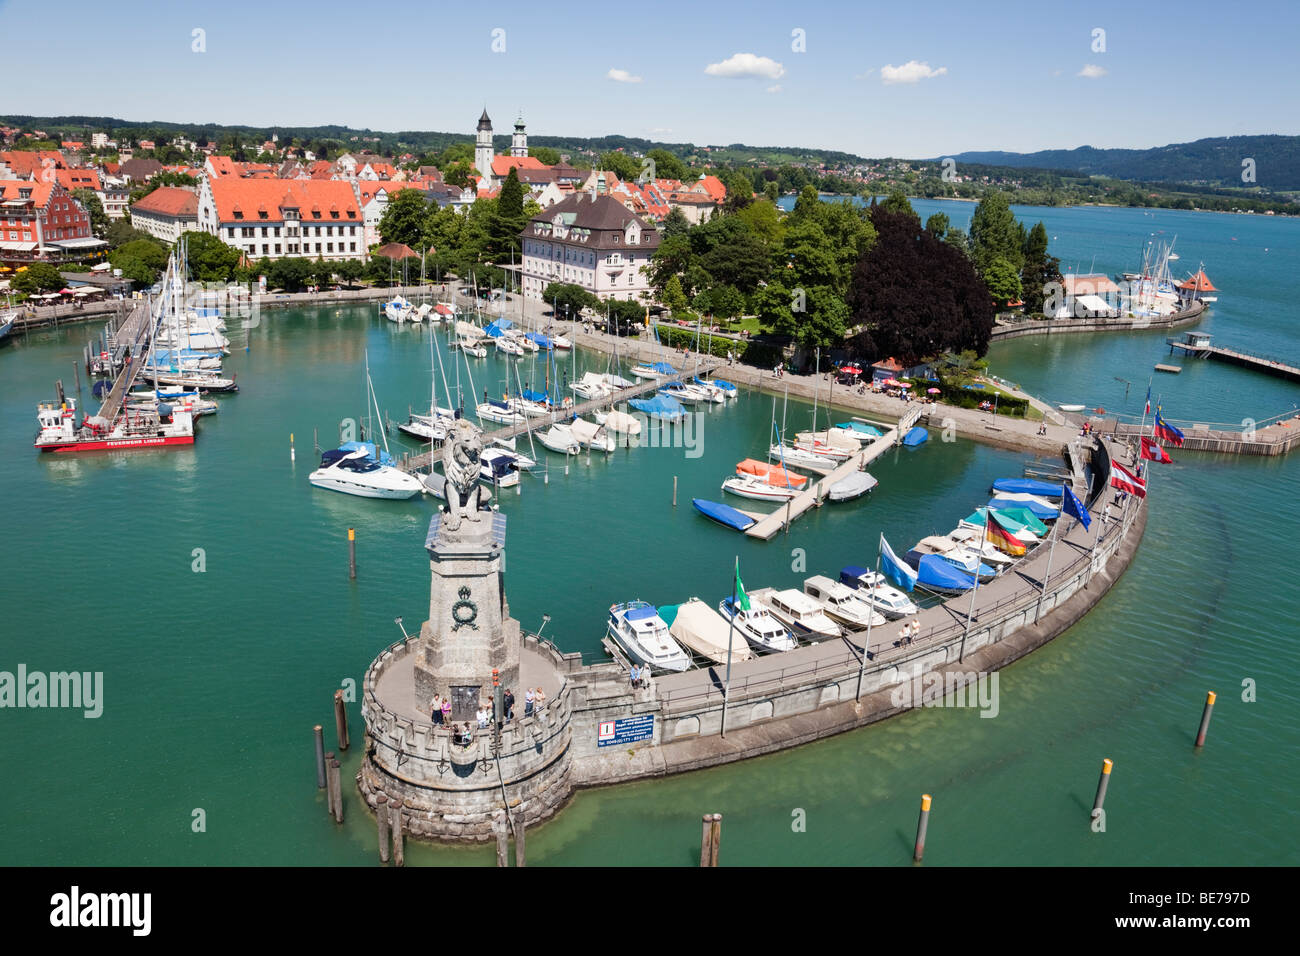 Lindau, Bavaria, Germany. Aerial view of boats in harbour and picturesque old town waterfront on Lake Constance Stock Photo